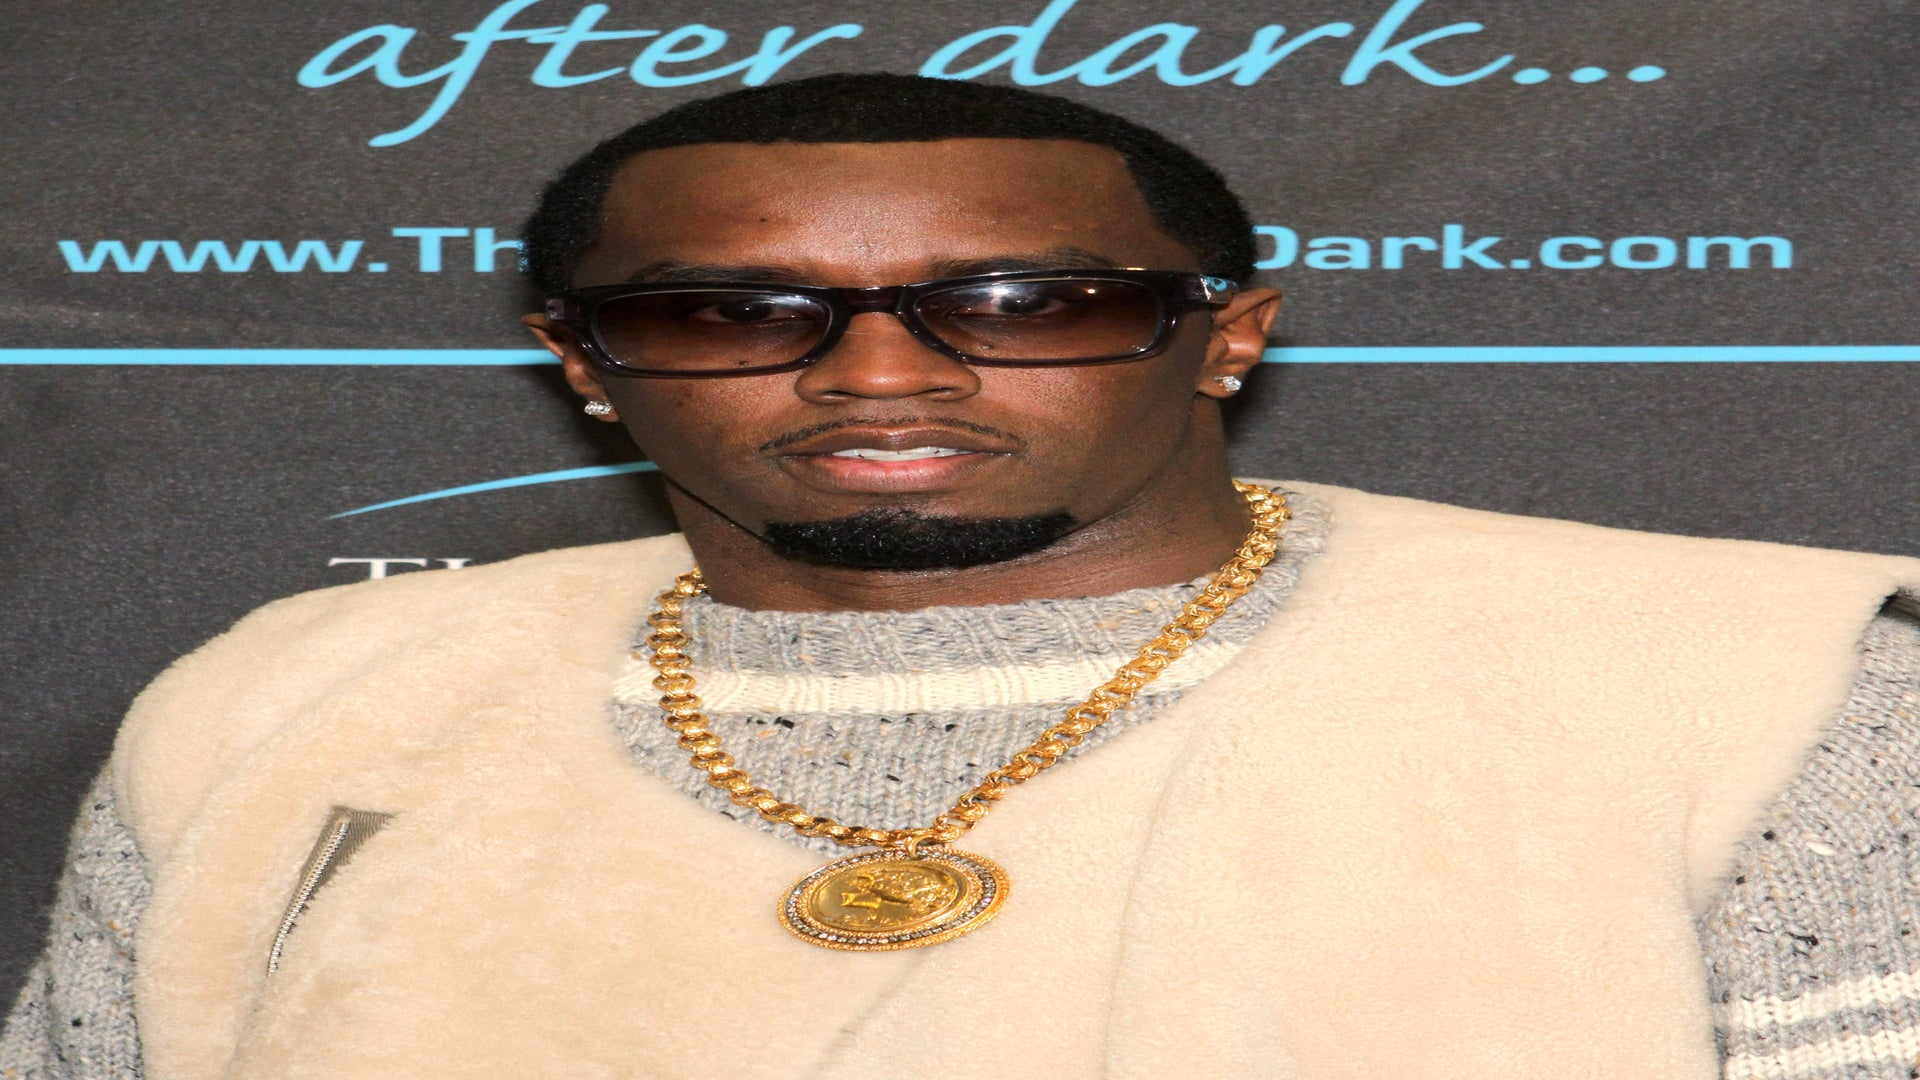 Coffee Talk: Diddy Involved in Car Crash, Suffers Minor Injuries